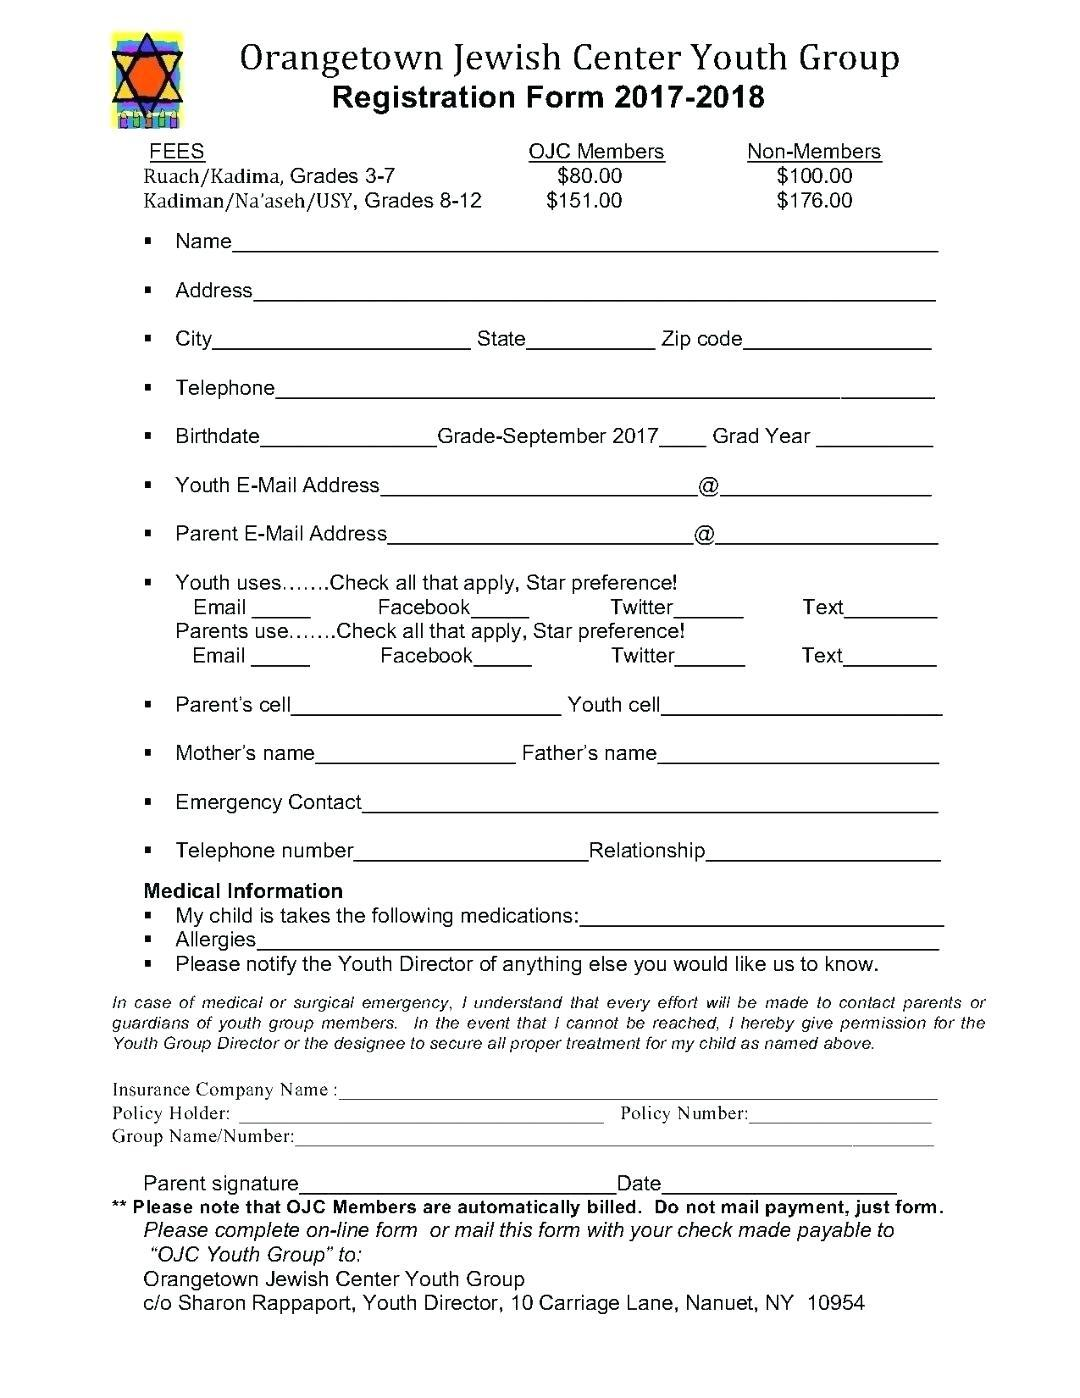 Church Retreat Registration Form Template